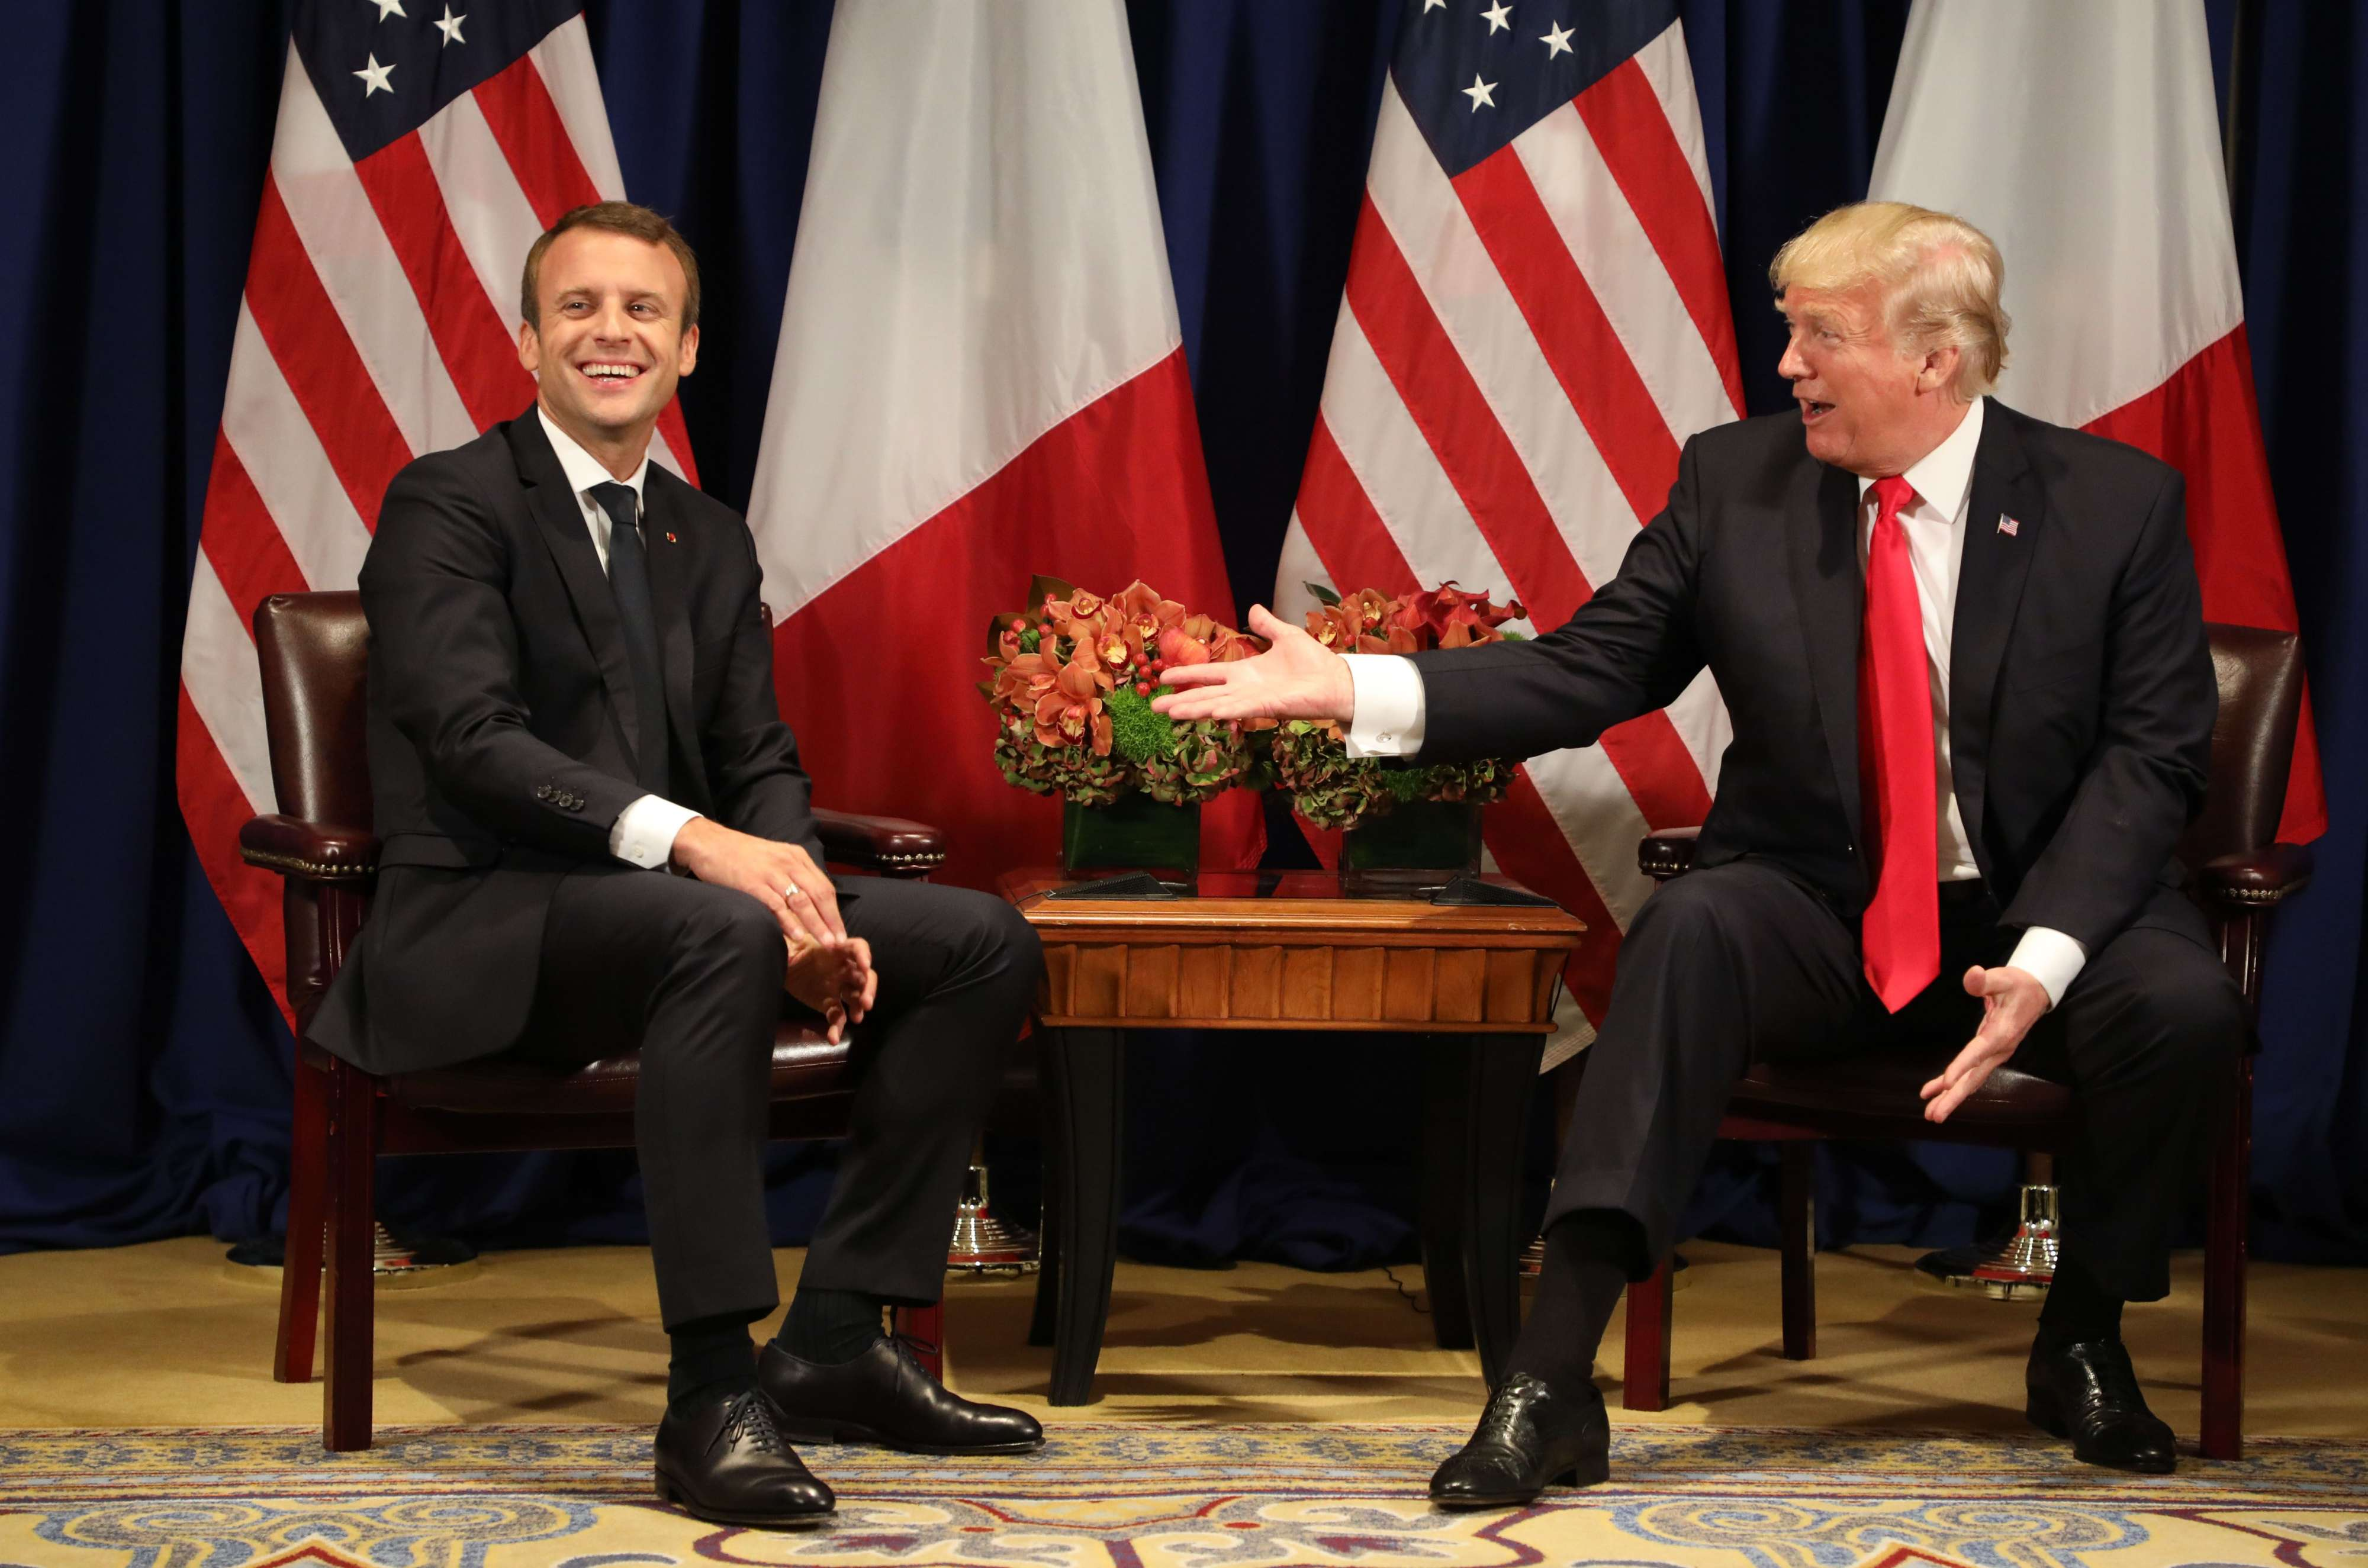 A 2017 file picture shows French President Emmanuel Macron (L) laughing with US President Donald Trump before a meeting at the Palace Hotel in New York. (AFP)